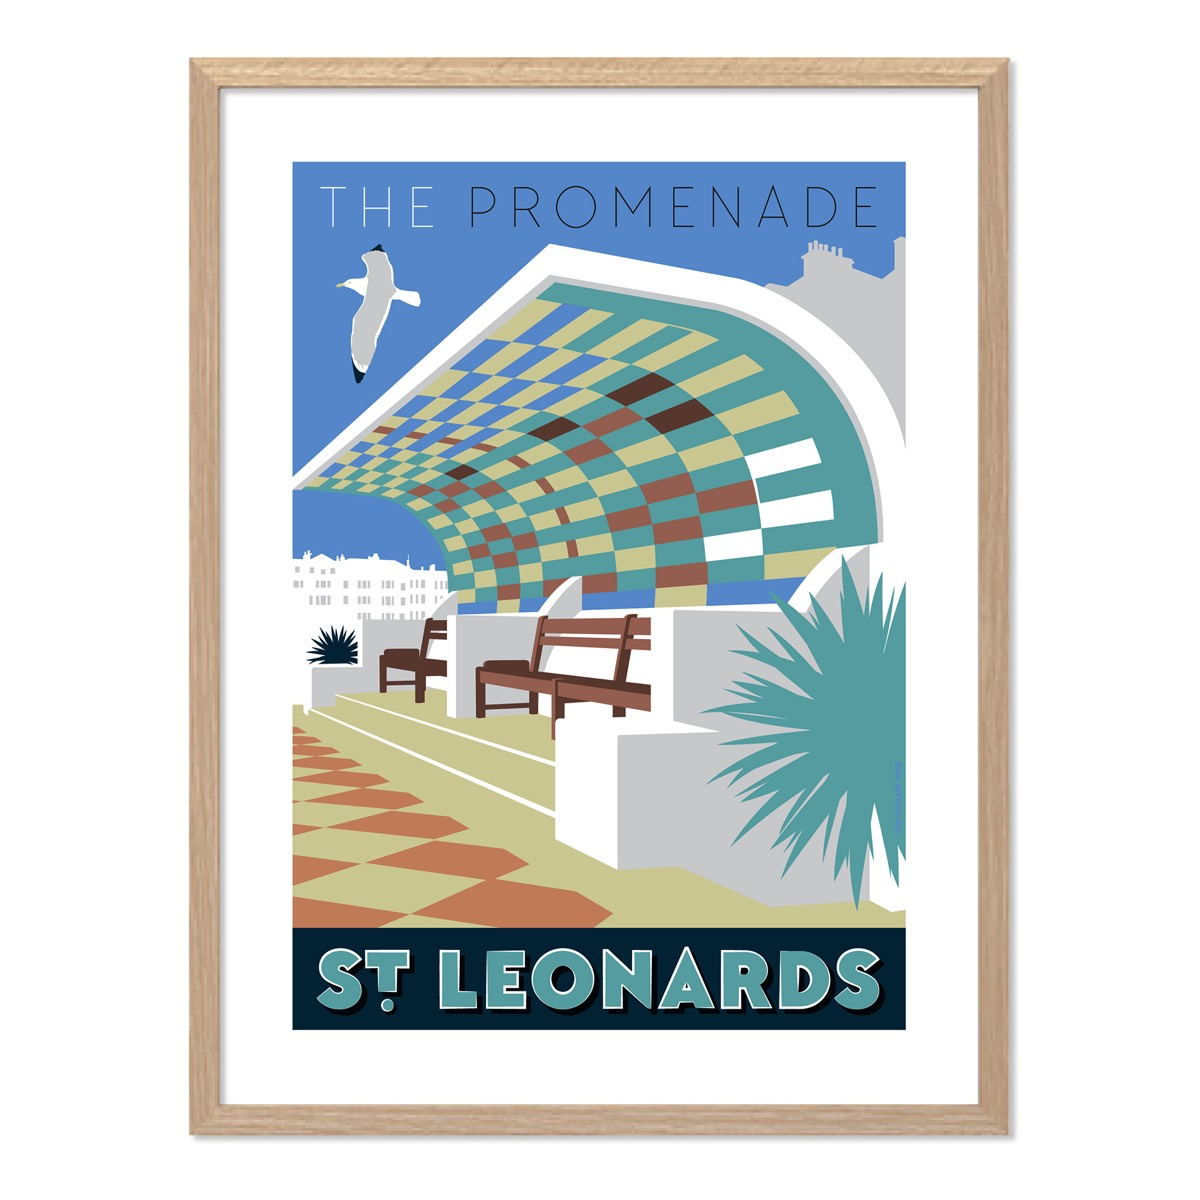 Print of The Promenade shelter, St Leonards